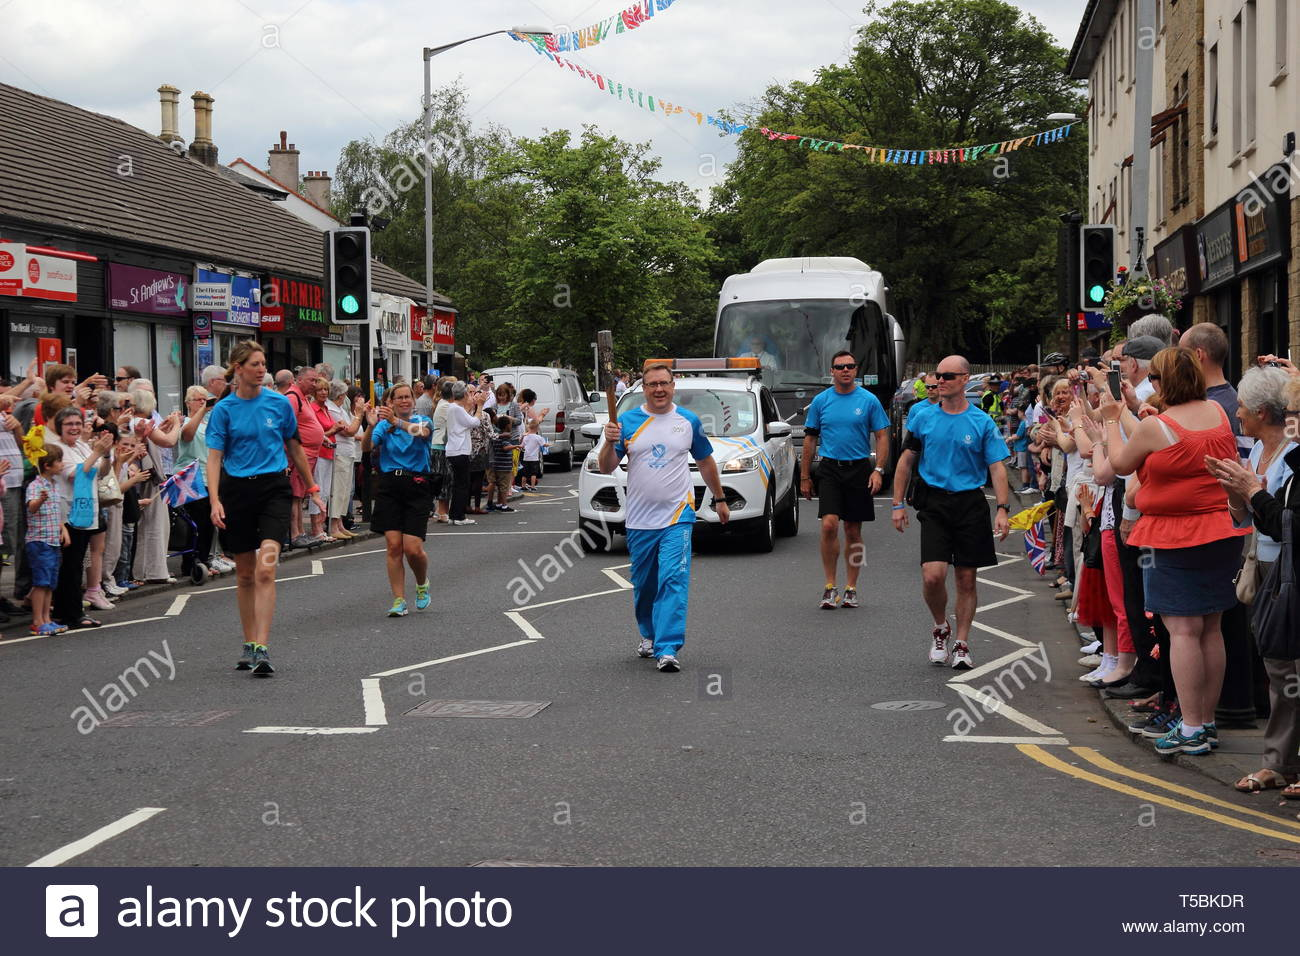 The Queen's Baton Relay for the Glasgow Commonwealth Games 2014 arrives in the East Kilbride village, South Lanarkshire, Scotland, UK. - Stock Image